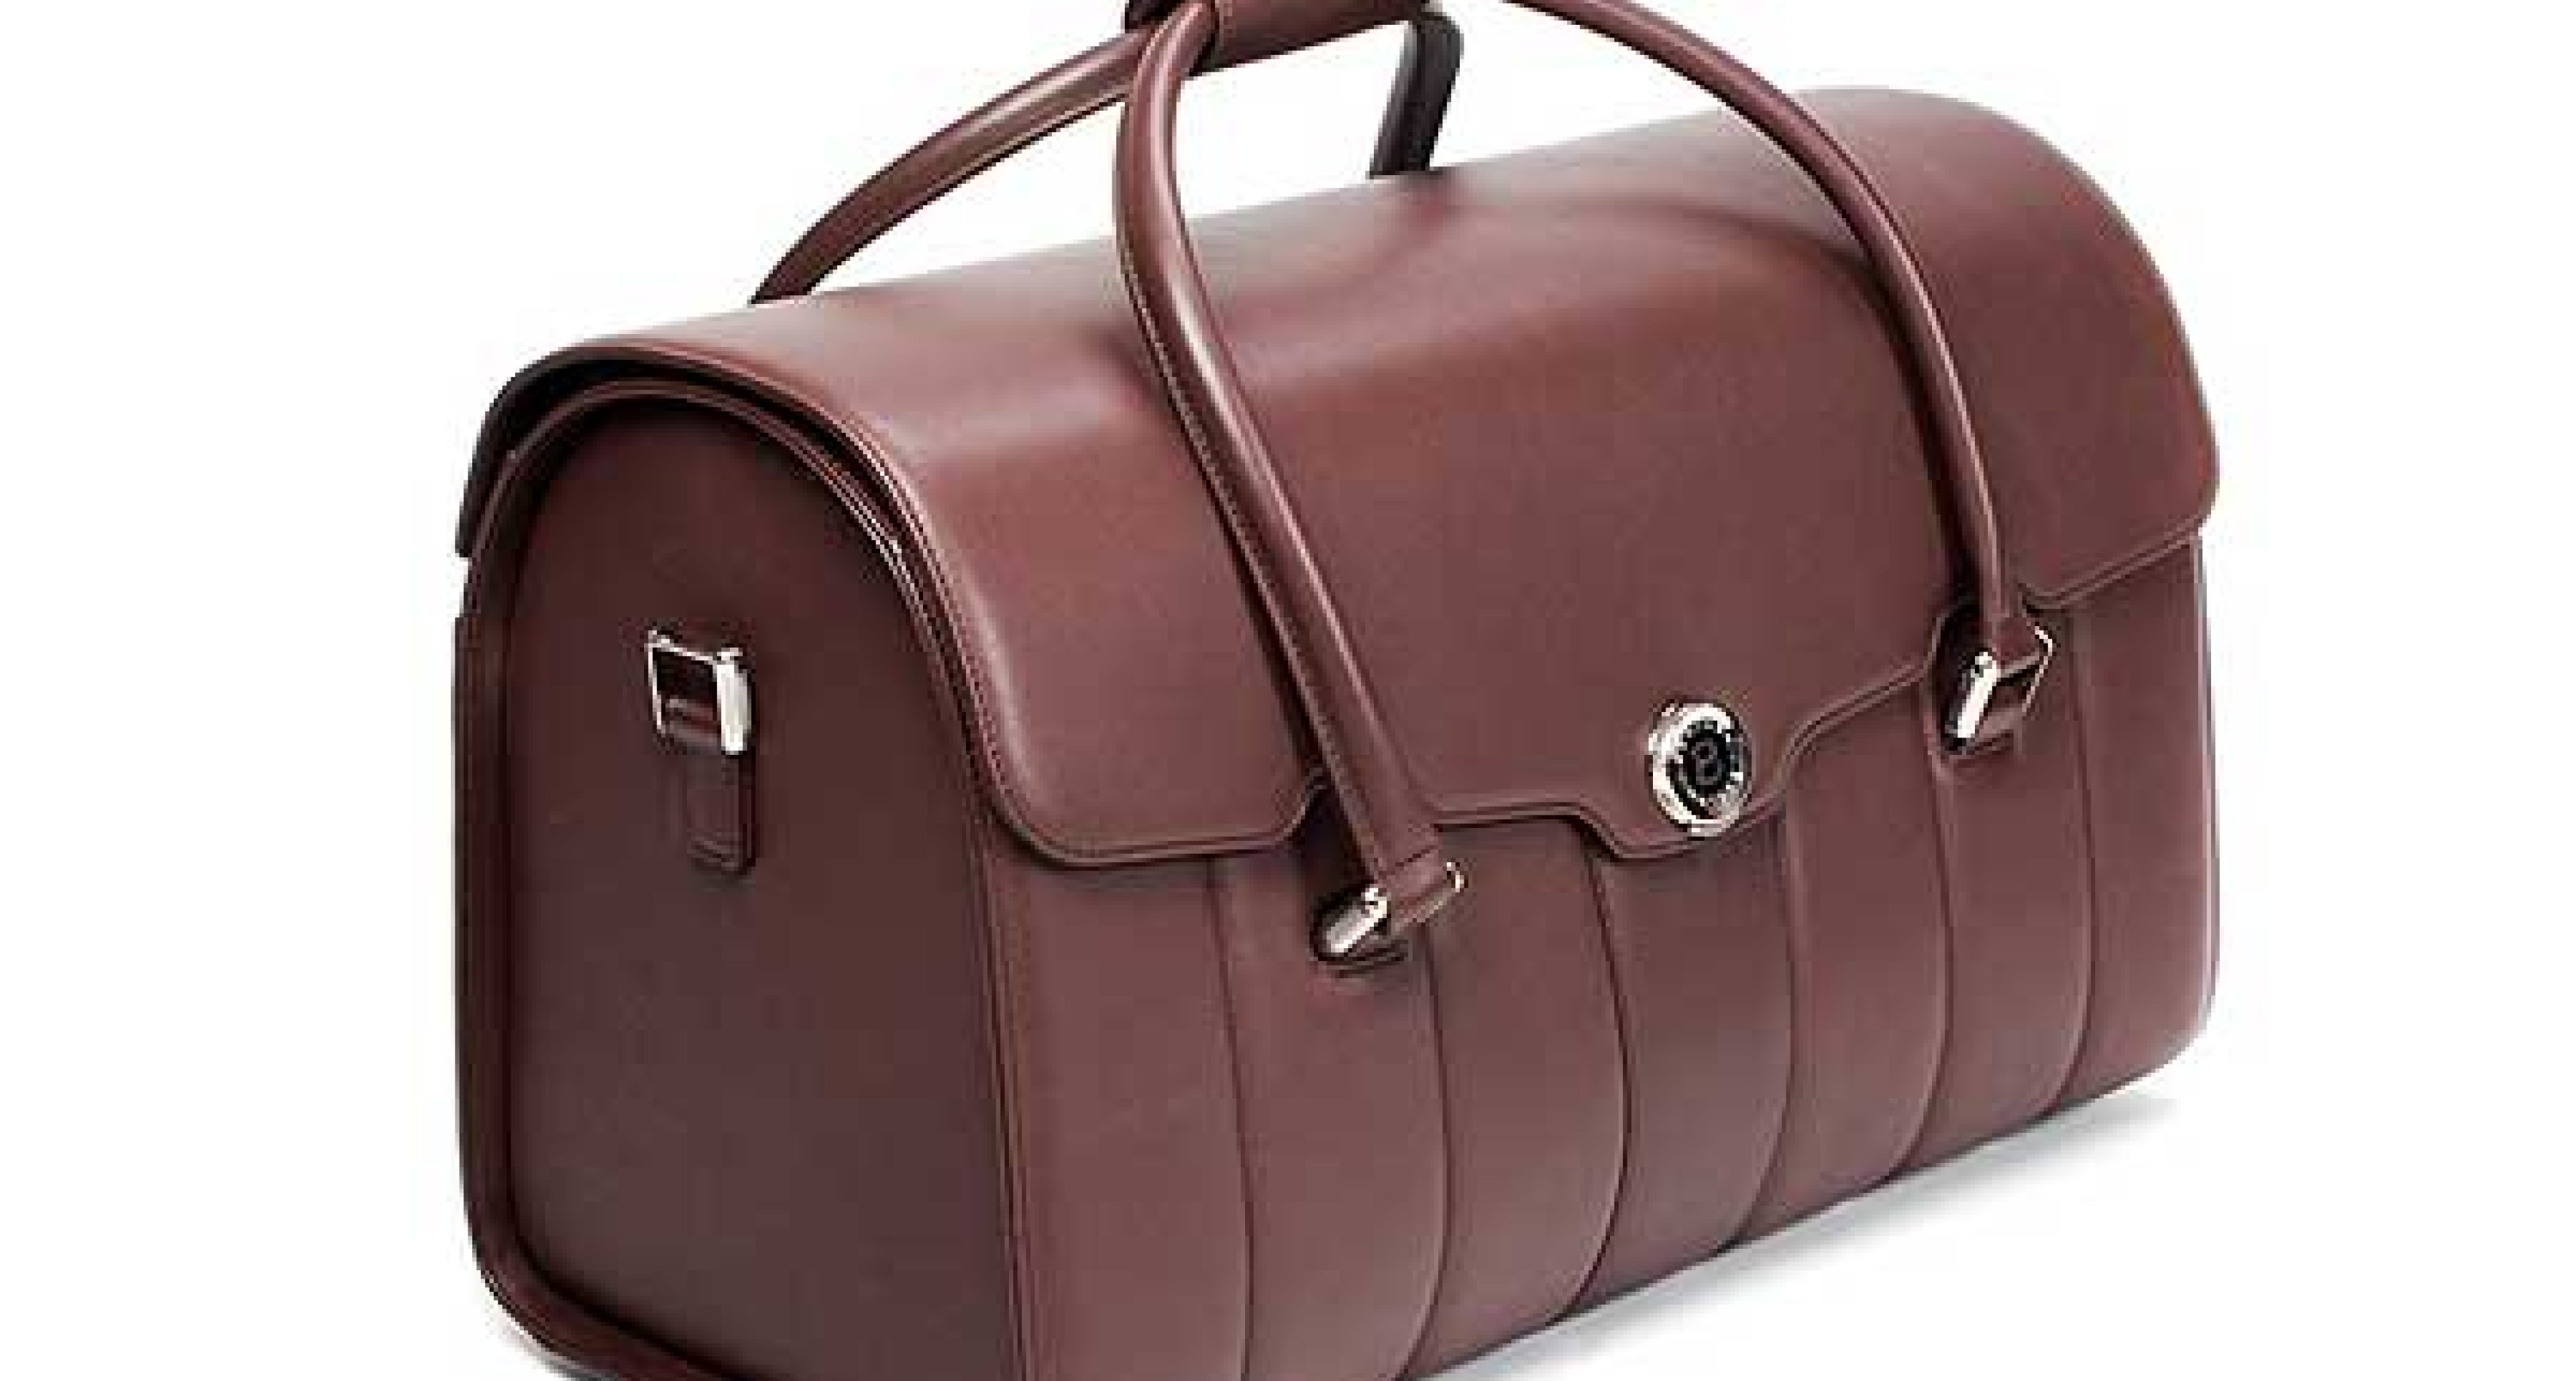 Alfred Dunhill Alfred Dunhill Leather Luggage